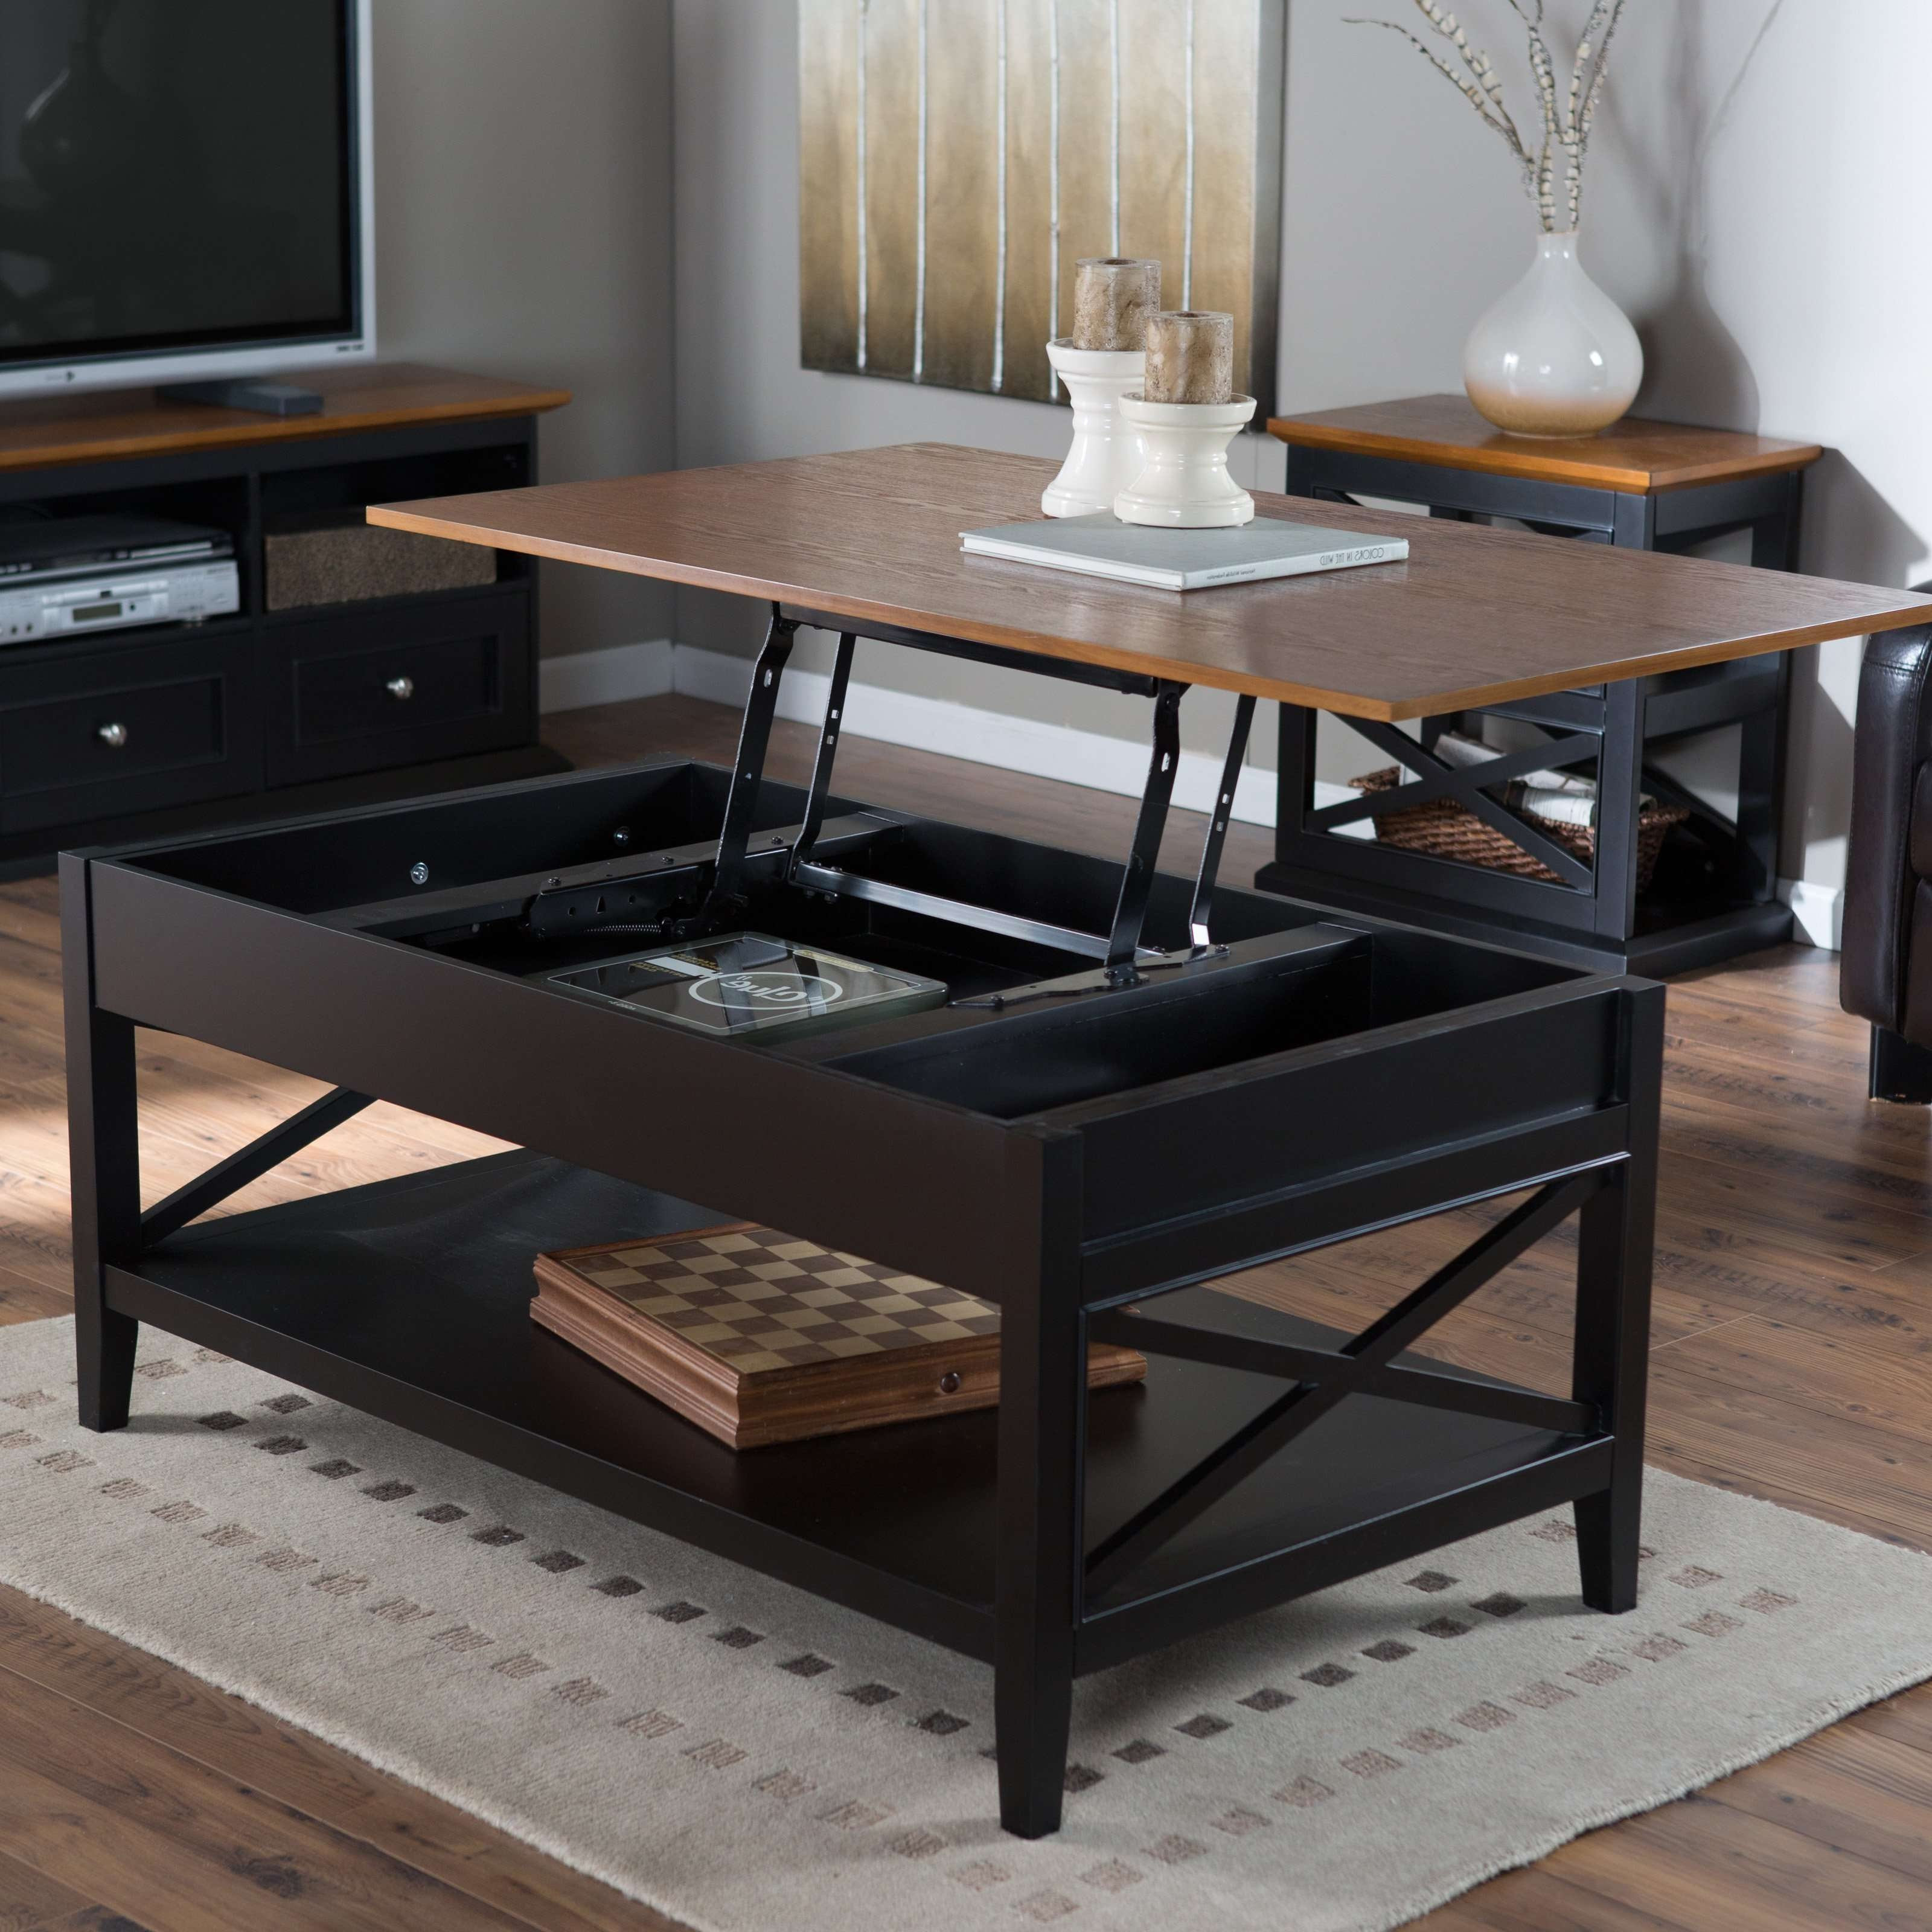 2018 Best of Lift Top Coffee Tables With Storage